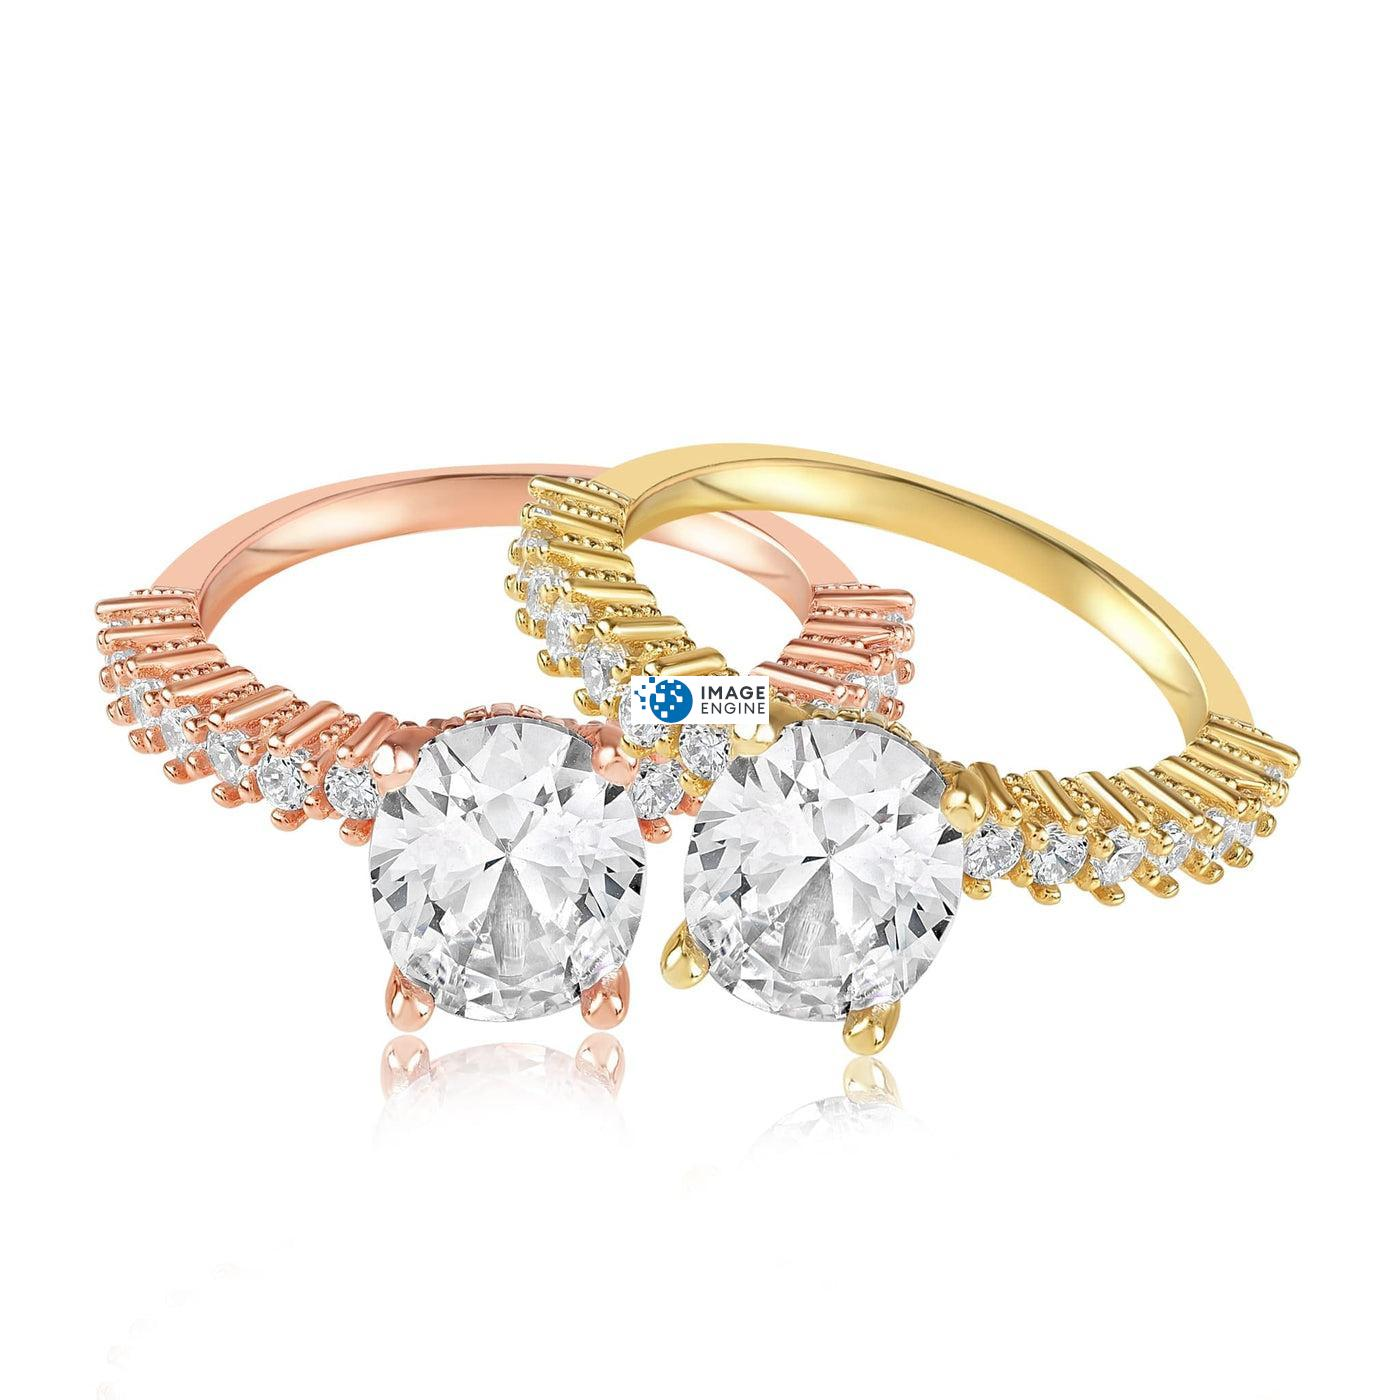 Cara Zirconia Ring - Front View Side by Side - 18K Rose Gold Vermeil and 18K Yellow Gold Vermeil